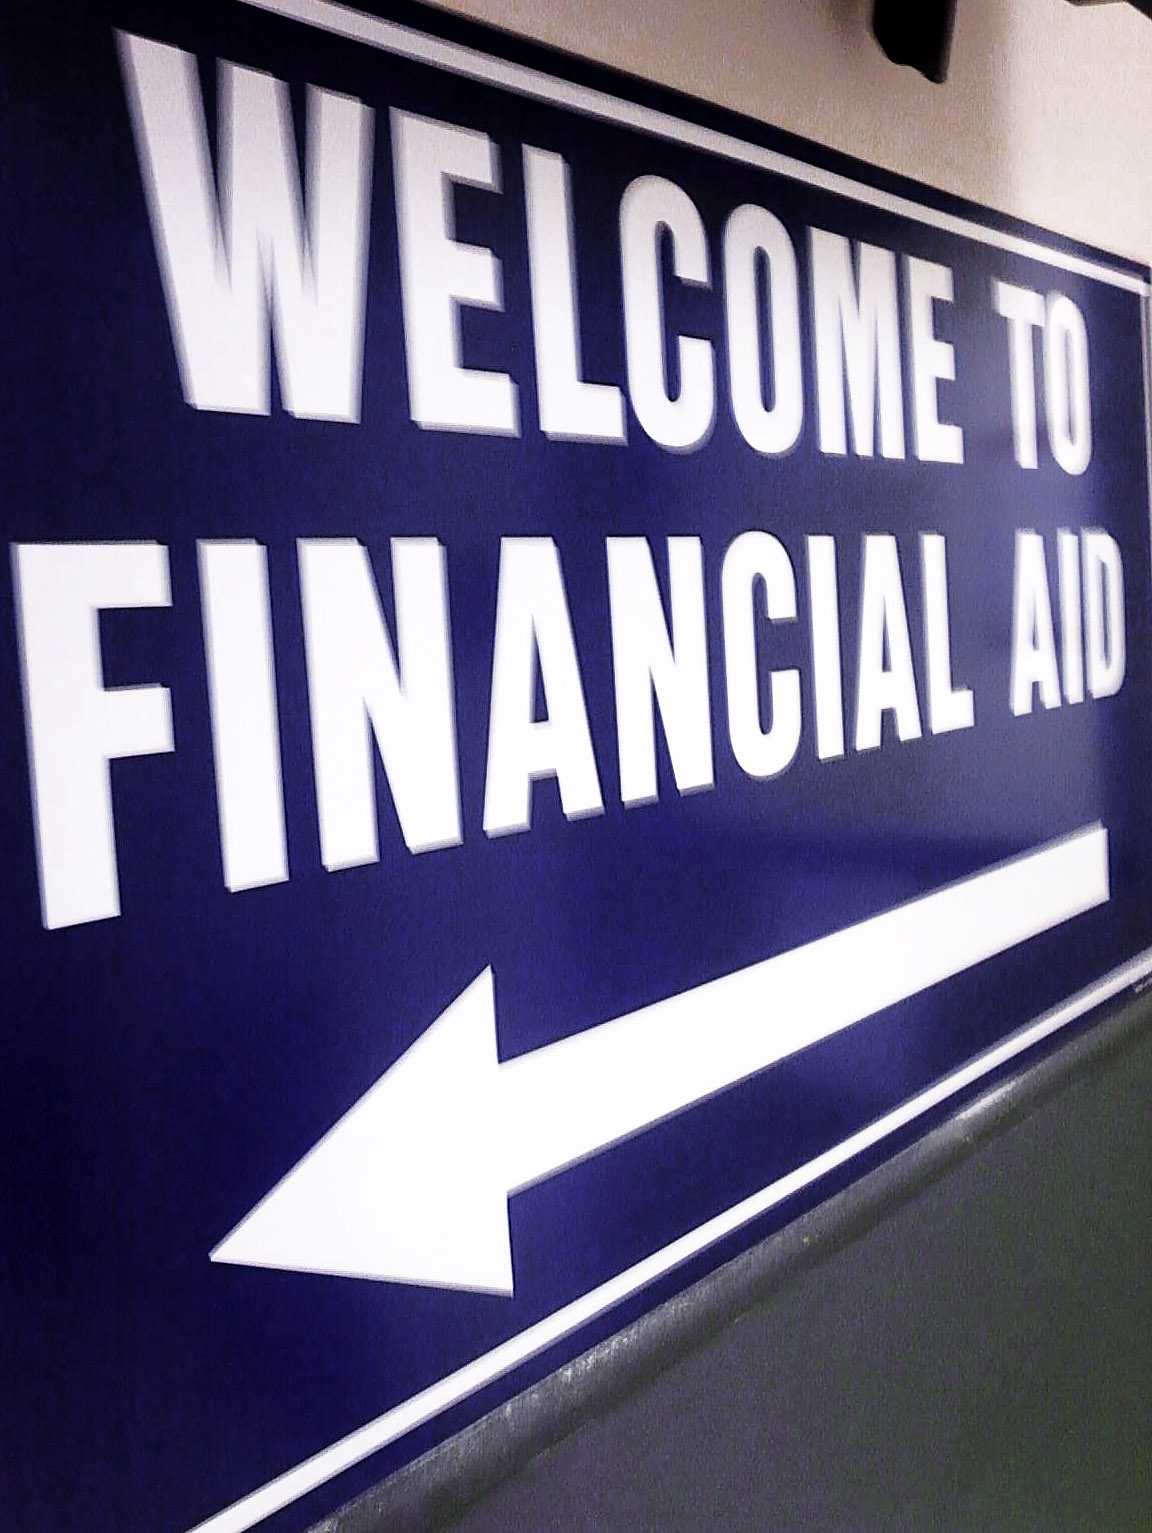 Financial aid is critical to college affordability